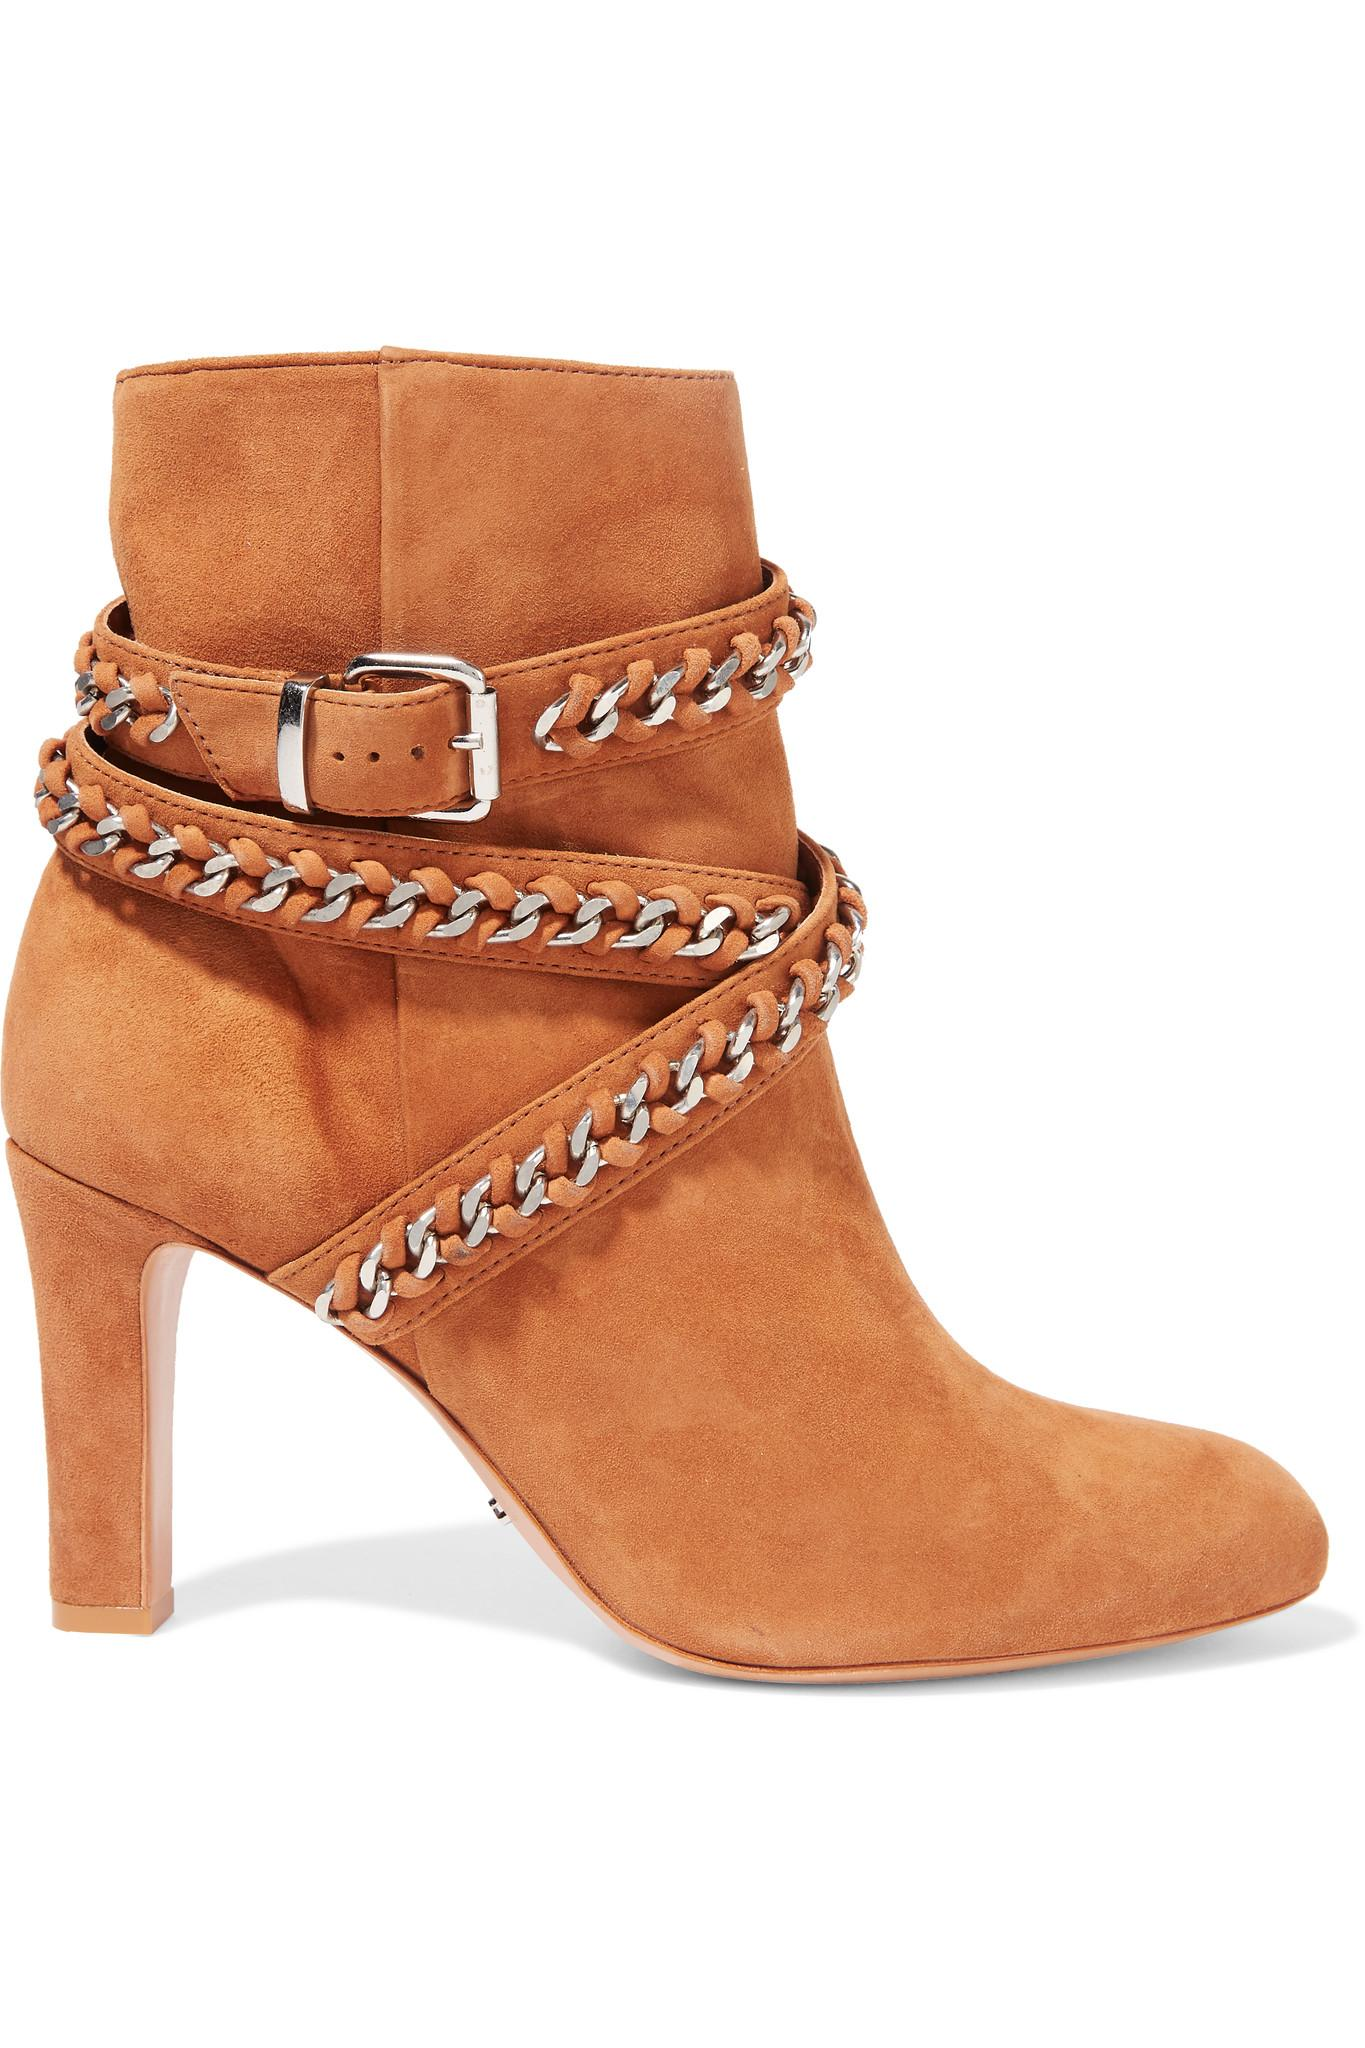 Schutz Chain Embellished Suede Ankle Boots In Brown Lyst